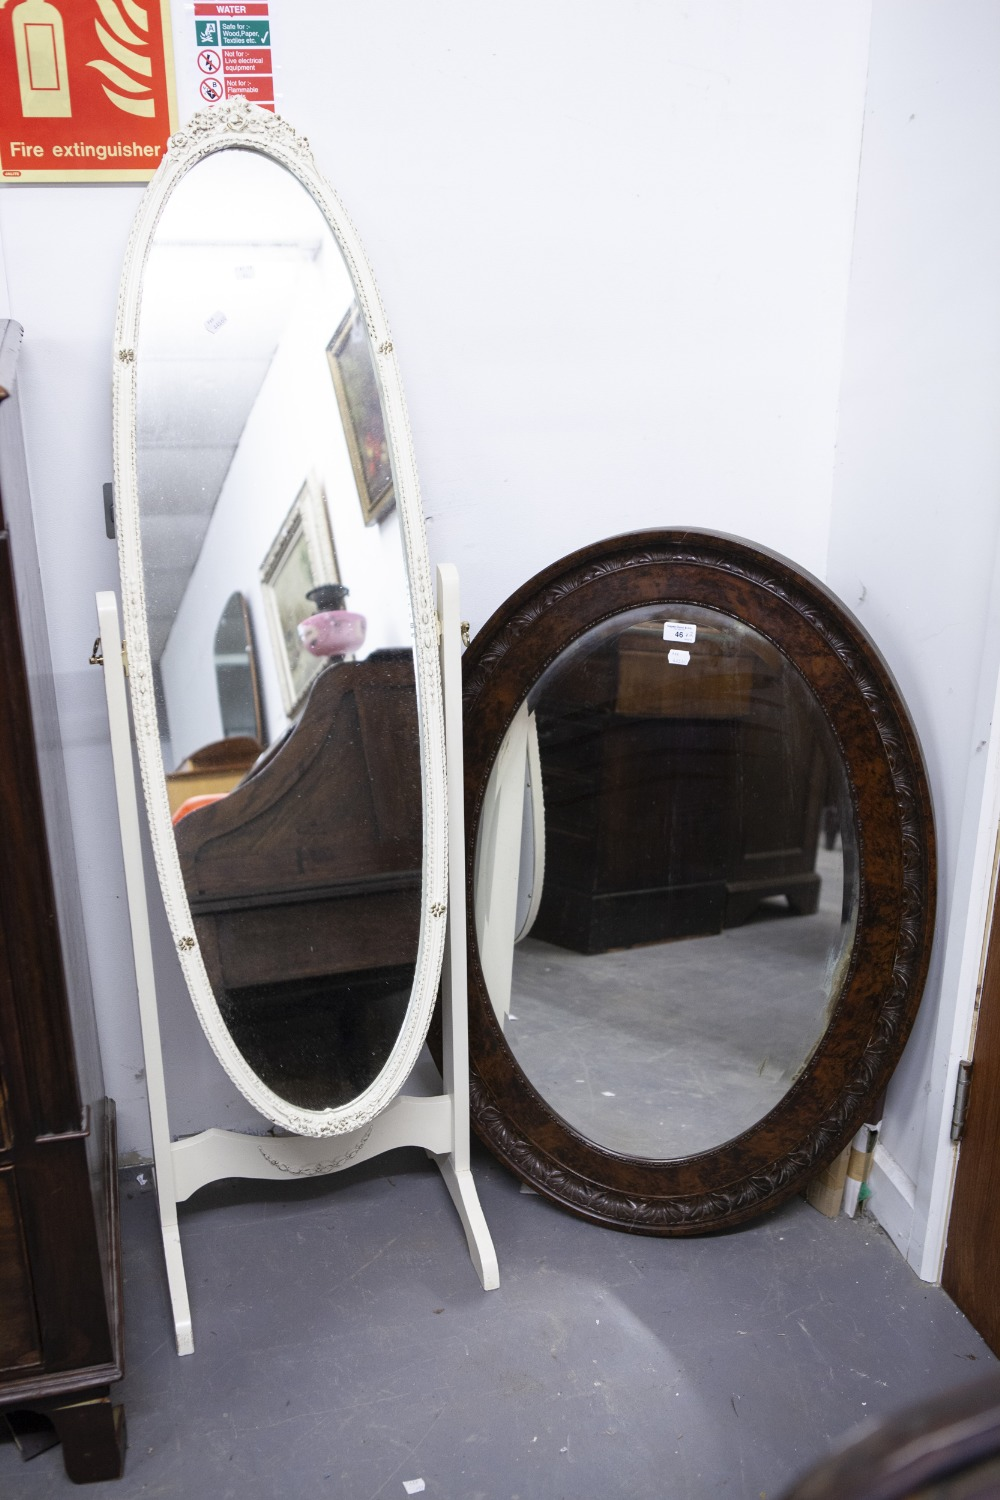 Lot 46 - A LARGE OVAL WALL MIRROR WITH BEVELLED EDGE IN STAINED WOOD FRAME AND A CREAM AND GILT OVAL CHEVAL